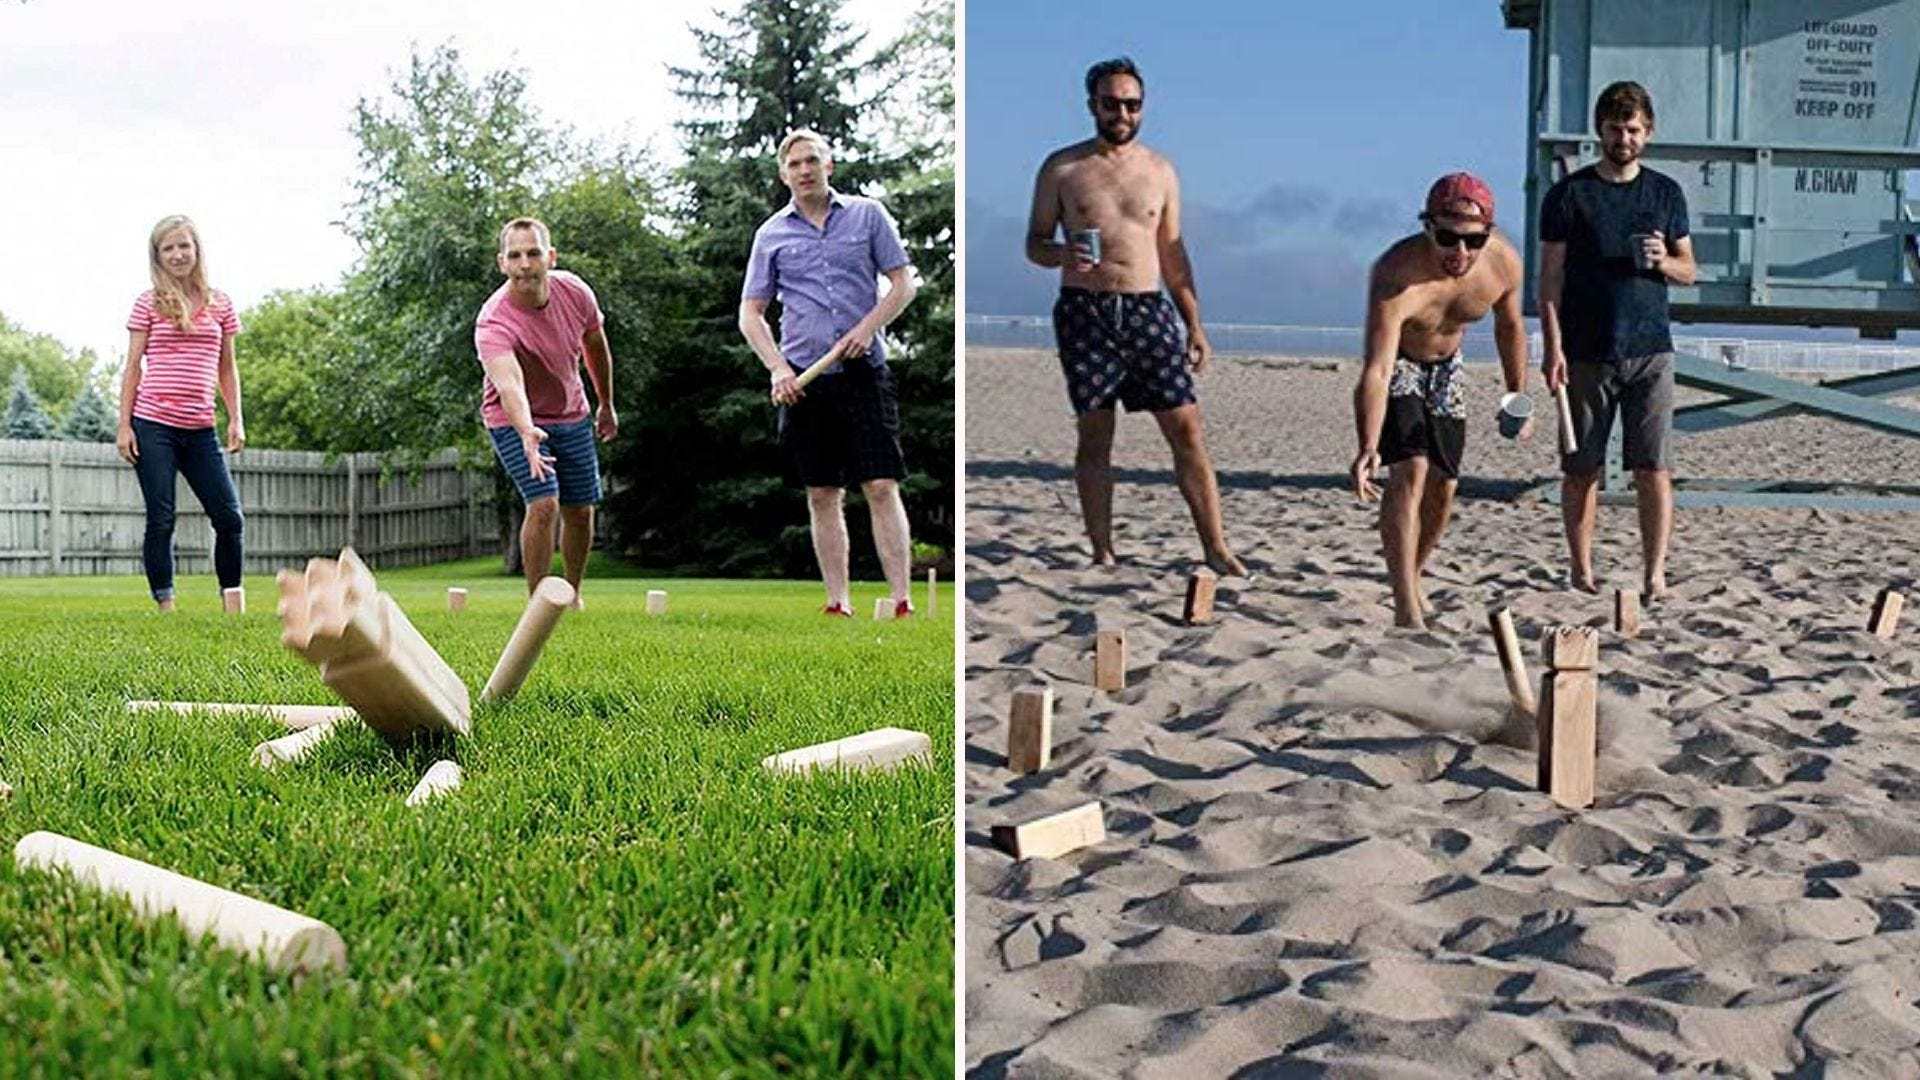 Two groups of people playing kubb: one on the lawn, one on the beach